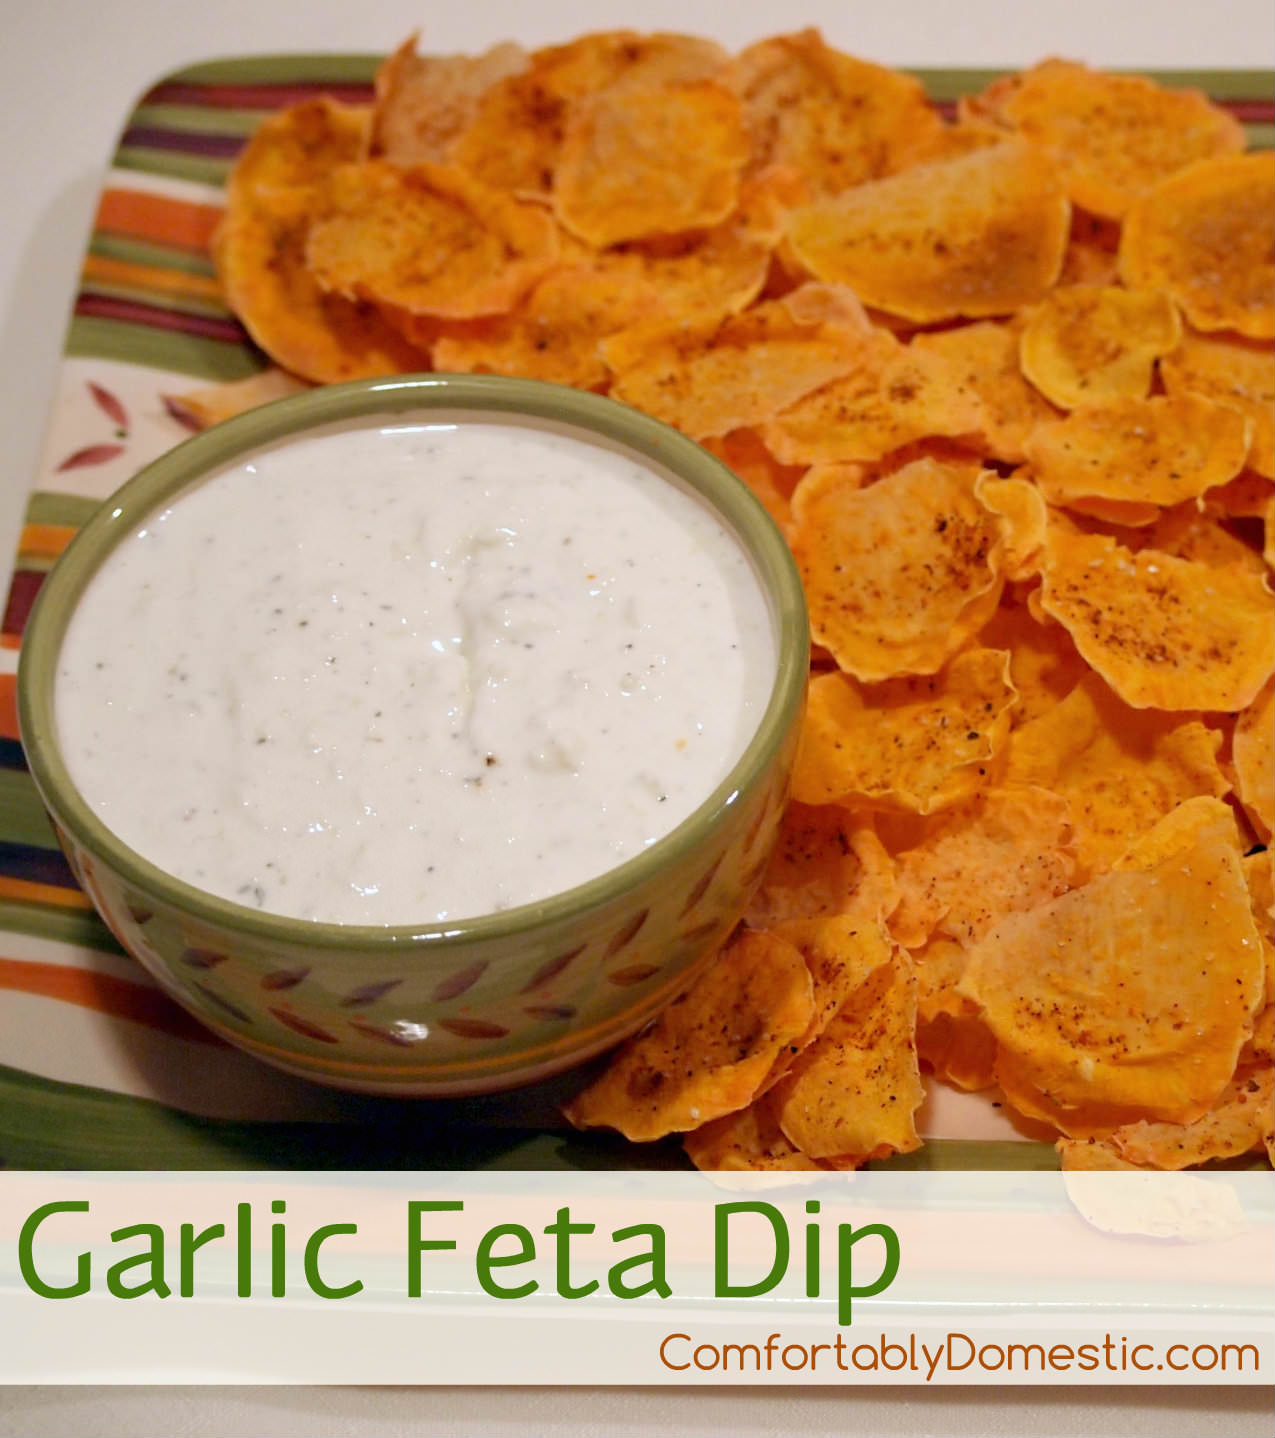 Garlic Feta Dip | ComfortablyDomestic.com is five minutes to fabulous for this delicious, light appetizer made with feta cheese, Greek yogurt, and plenty of garlic and herbs.